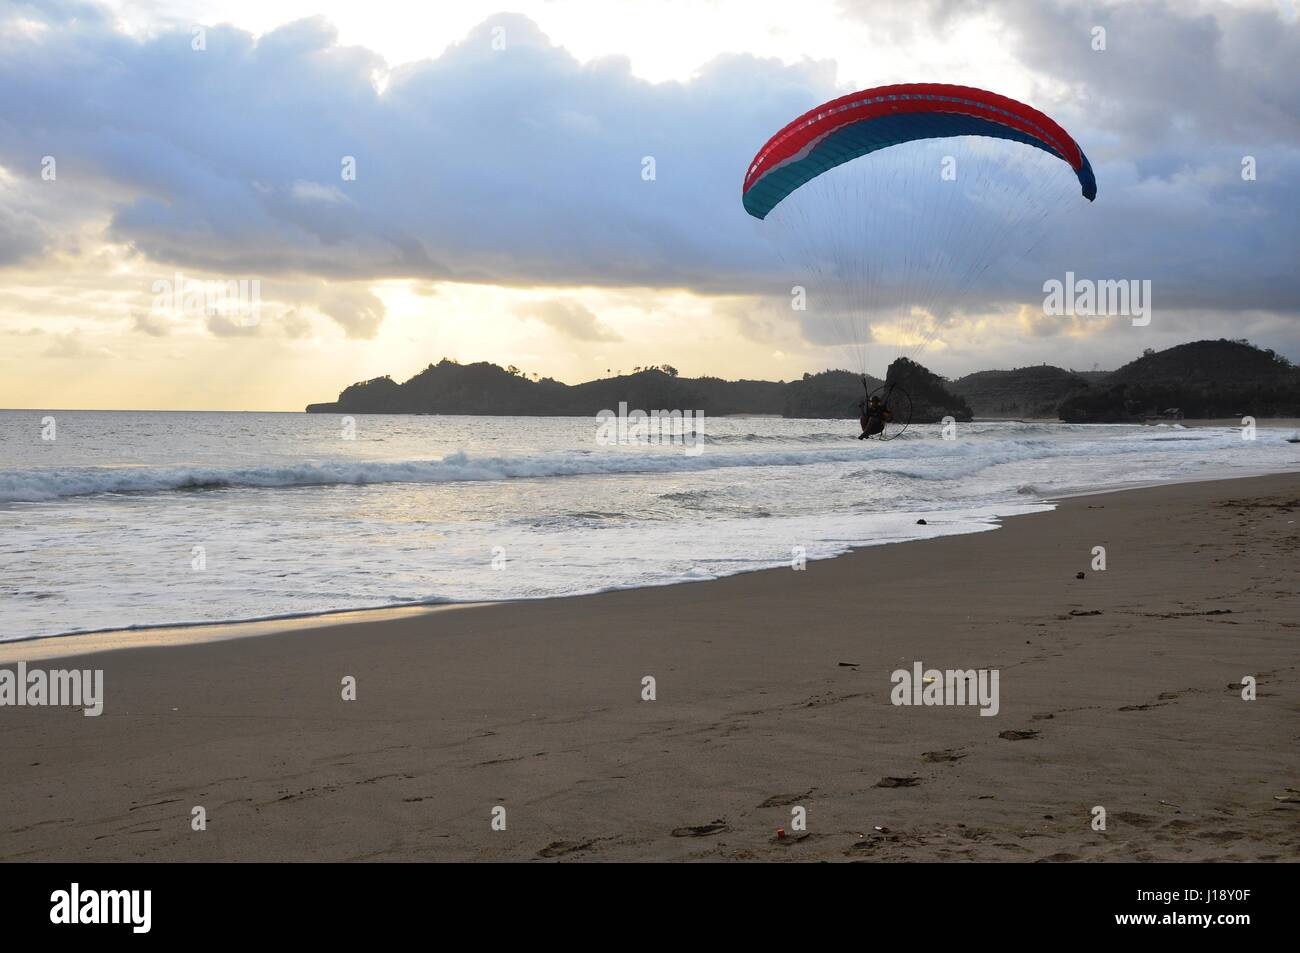 shoring with paragliding in the beach - Stock Image